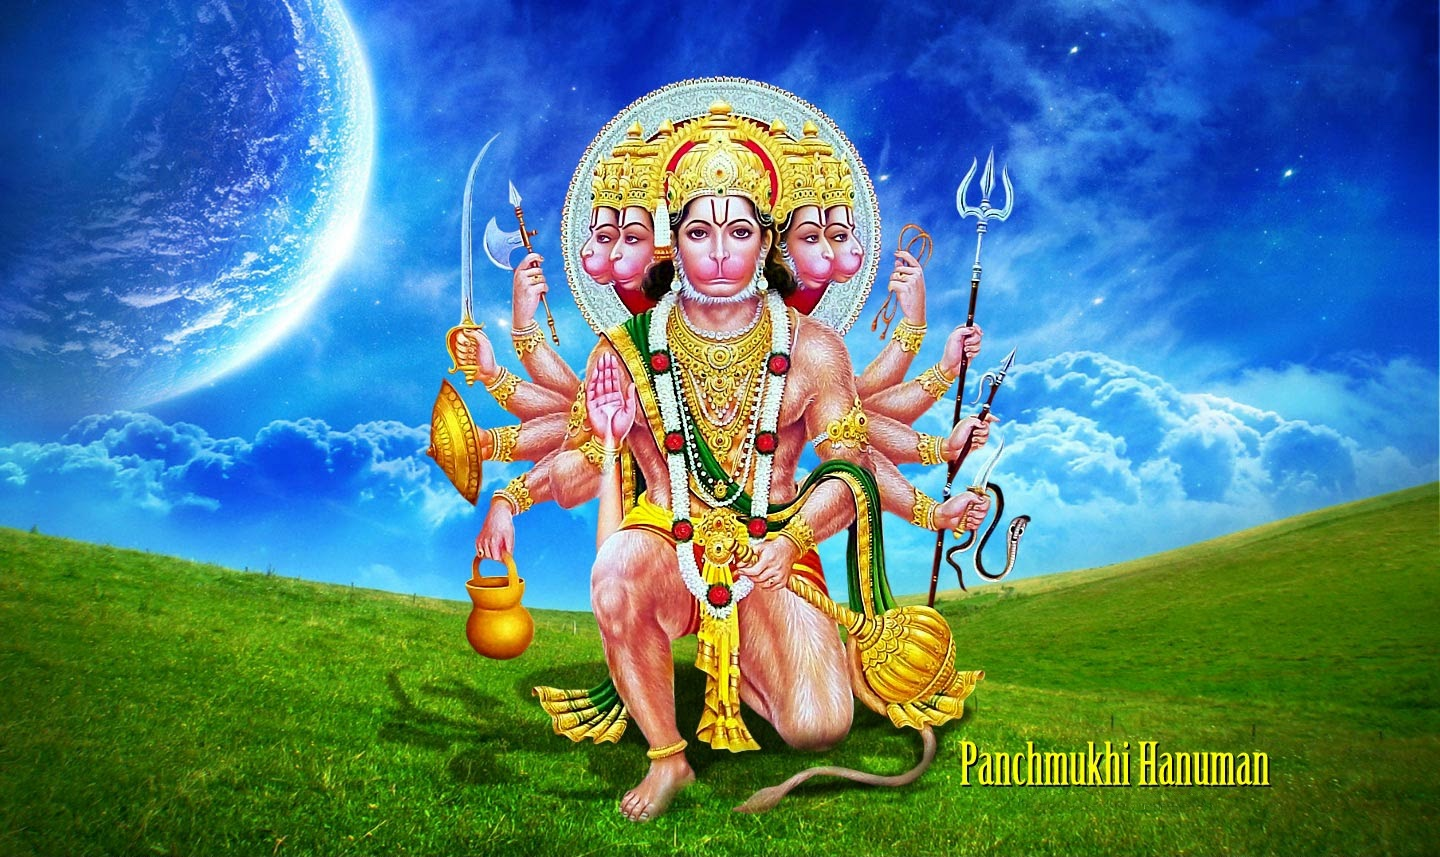 Download Hanuman Ji Wallpaper Full Size Hd Gallery